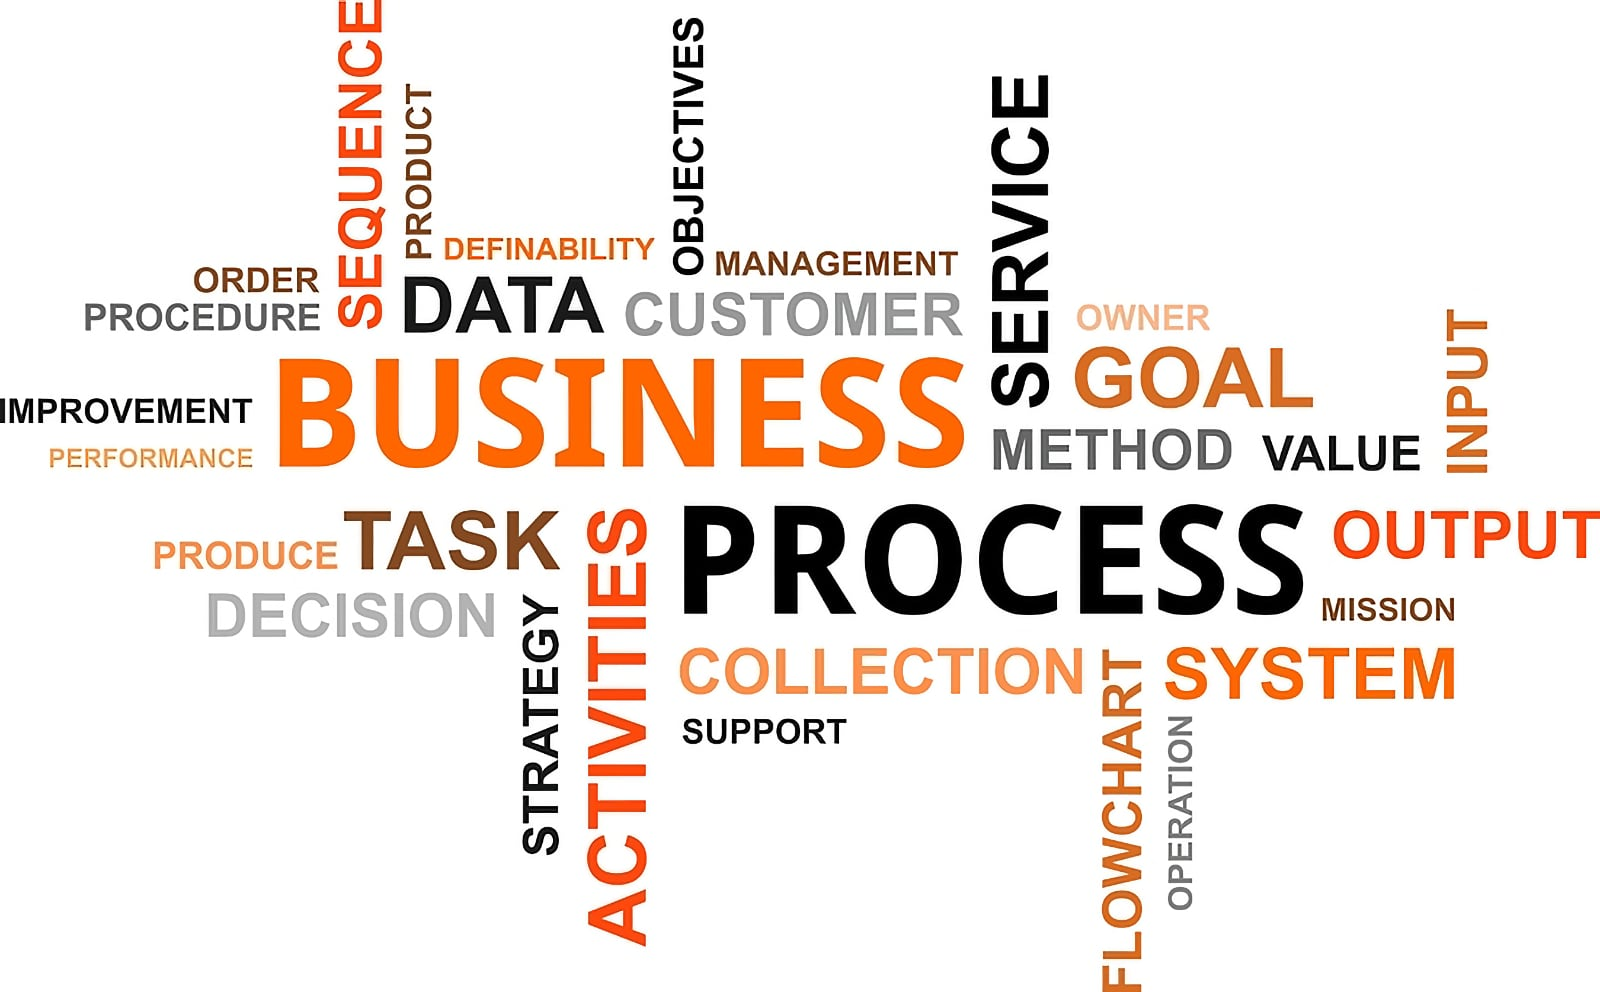 Word cloud image centred on the phrase Business Process, including other related words and phrases